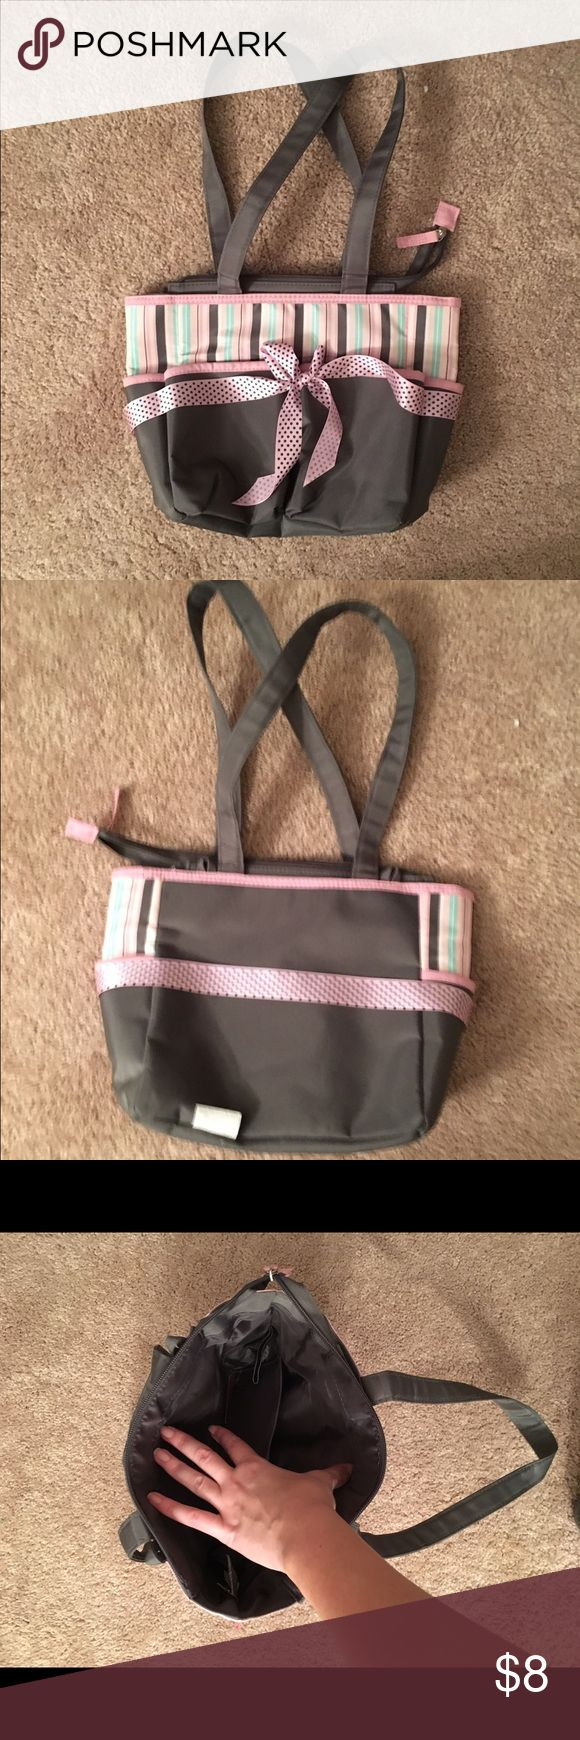 Small diaper bag Enough room for bottles, wipes, diapers and other small stuff (diaper rash cream, pacifier) Bags Baby Bags